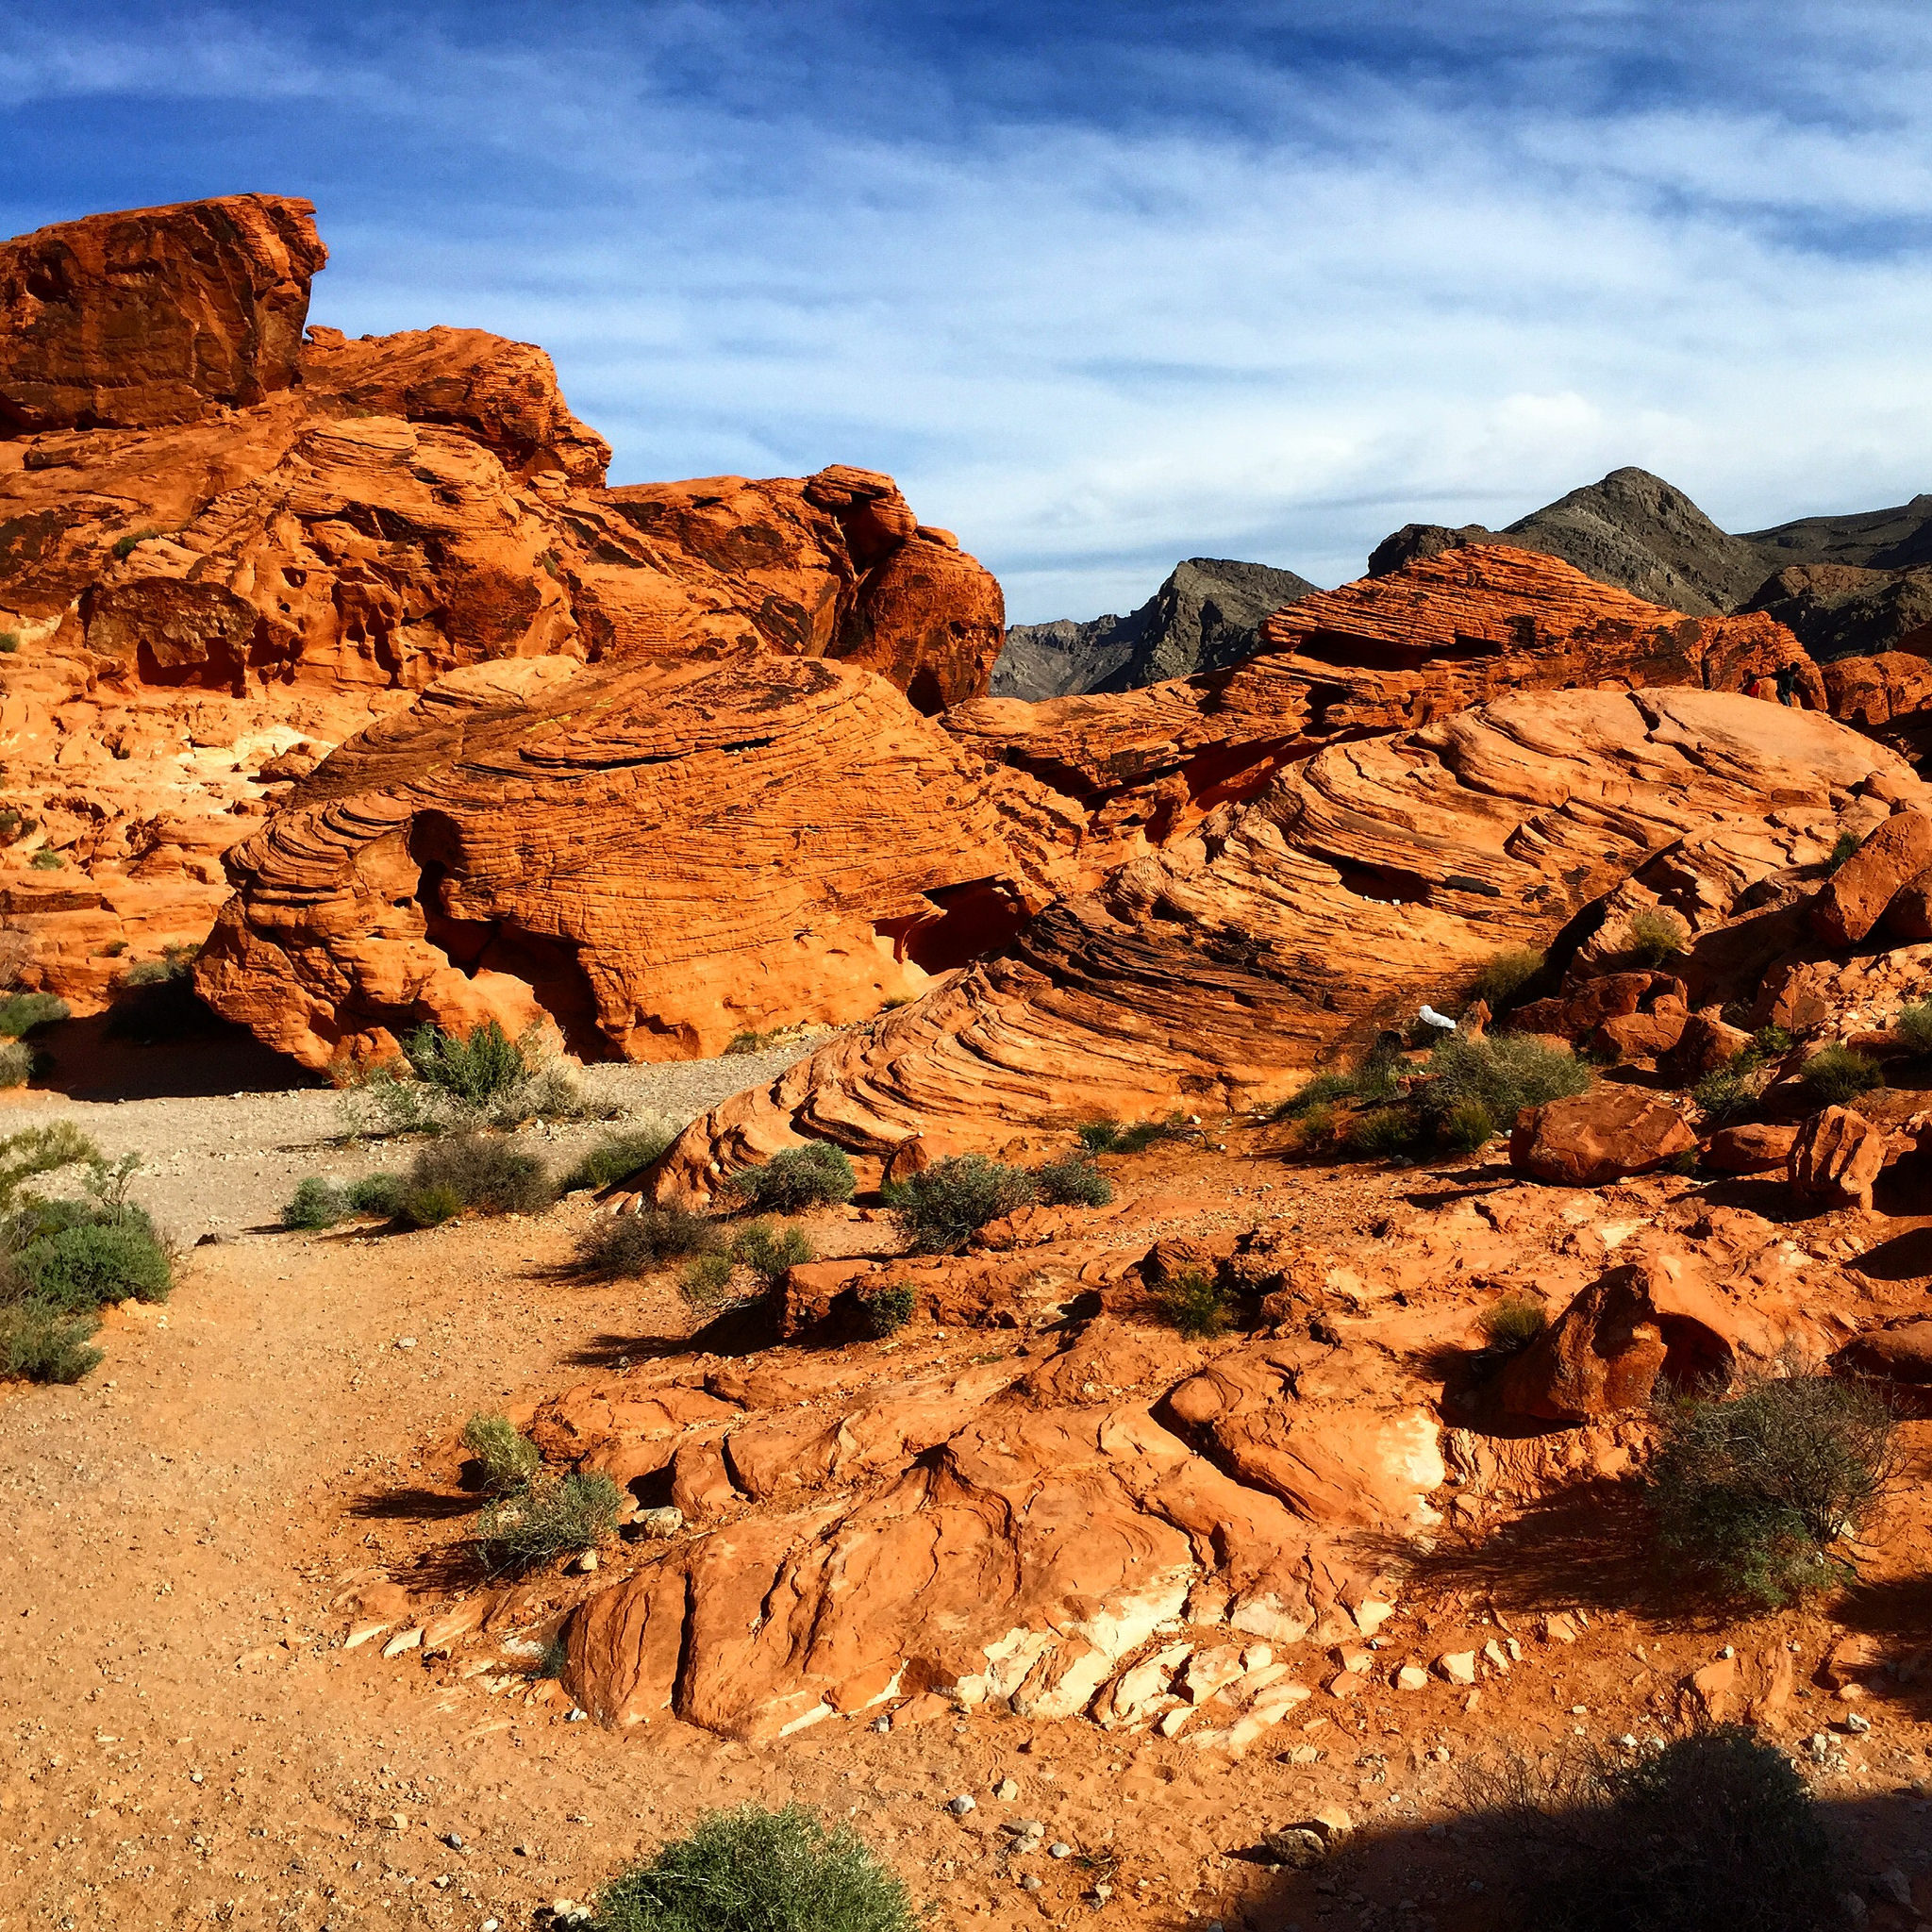 In the Valley of Fire State Park (GC3AQRC). Photo by Love.